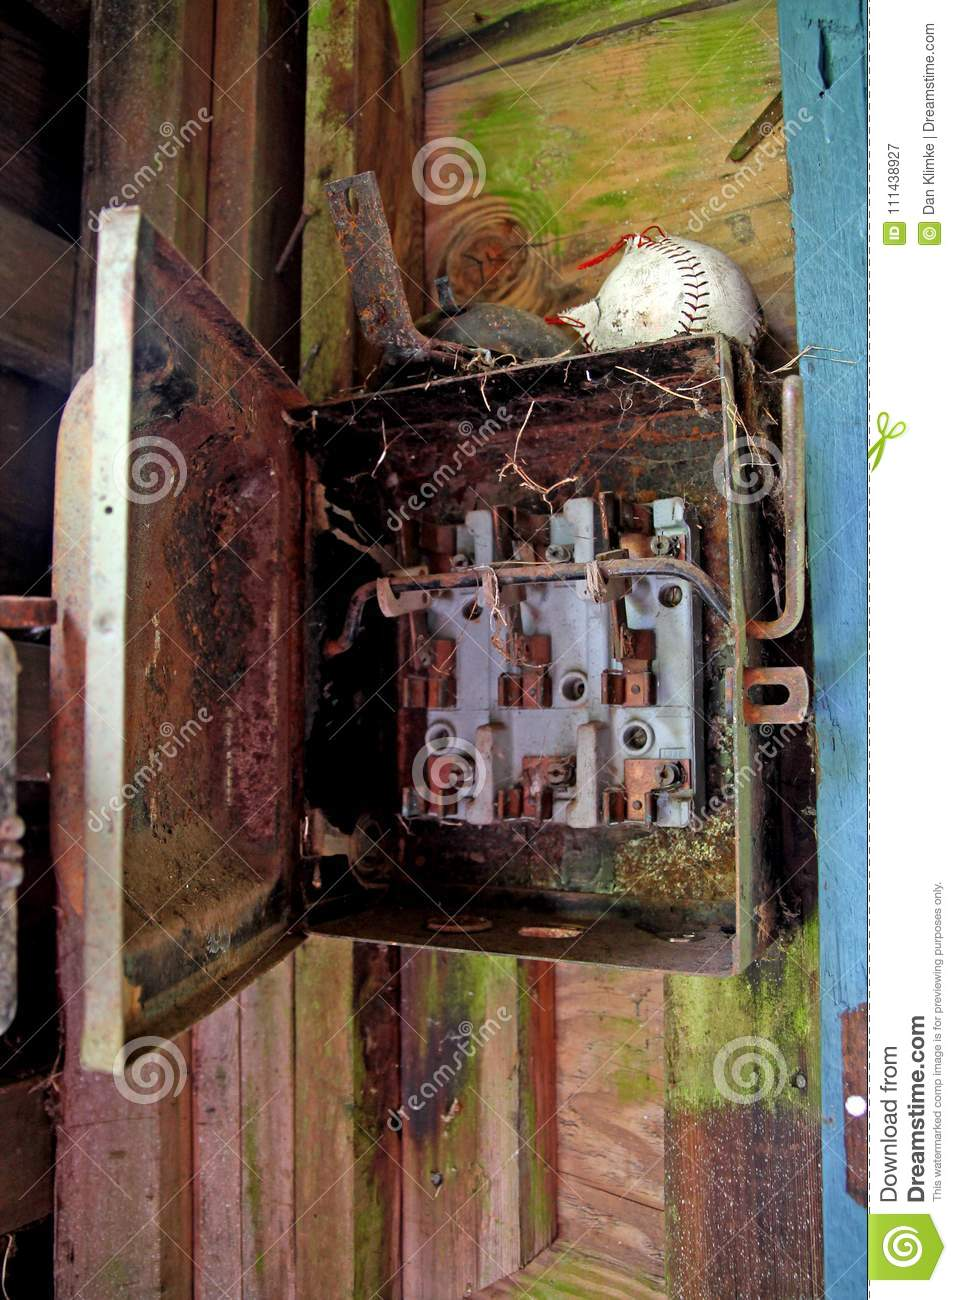 Rusted electrical panel stock image. Image of dilapidated ... on household breaker panel, house electrical transformer, home circuit panel, house electrical installation, house electrical box, house electrical wire, house electrical conduit, wiring a breaker panel, house wiring, house siding,